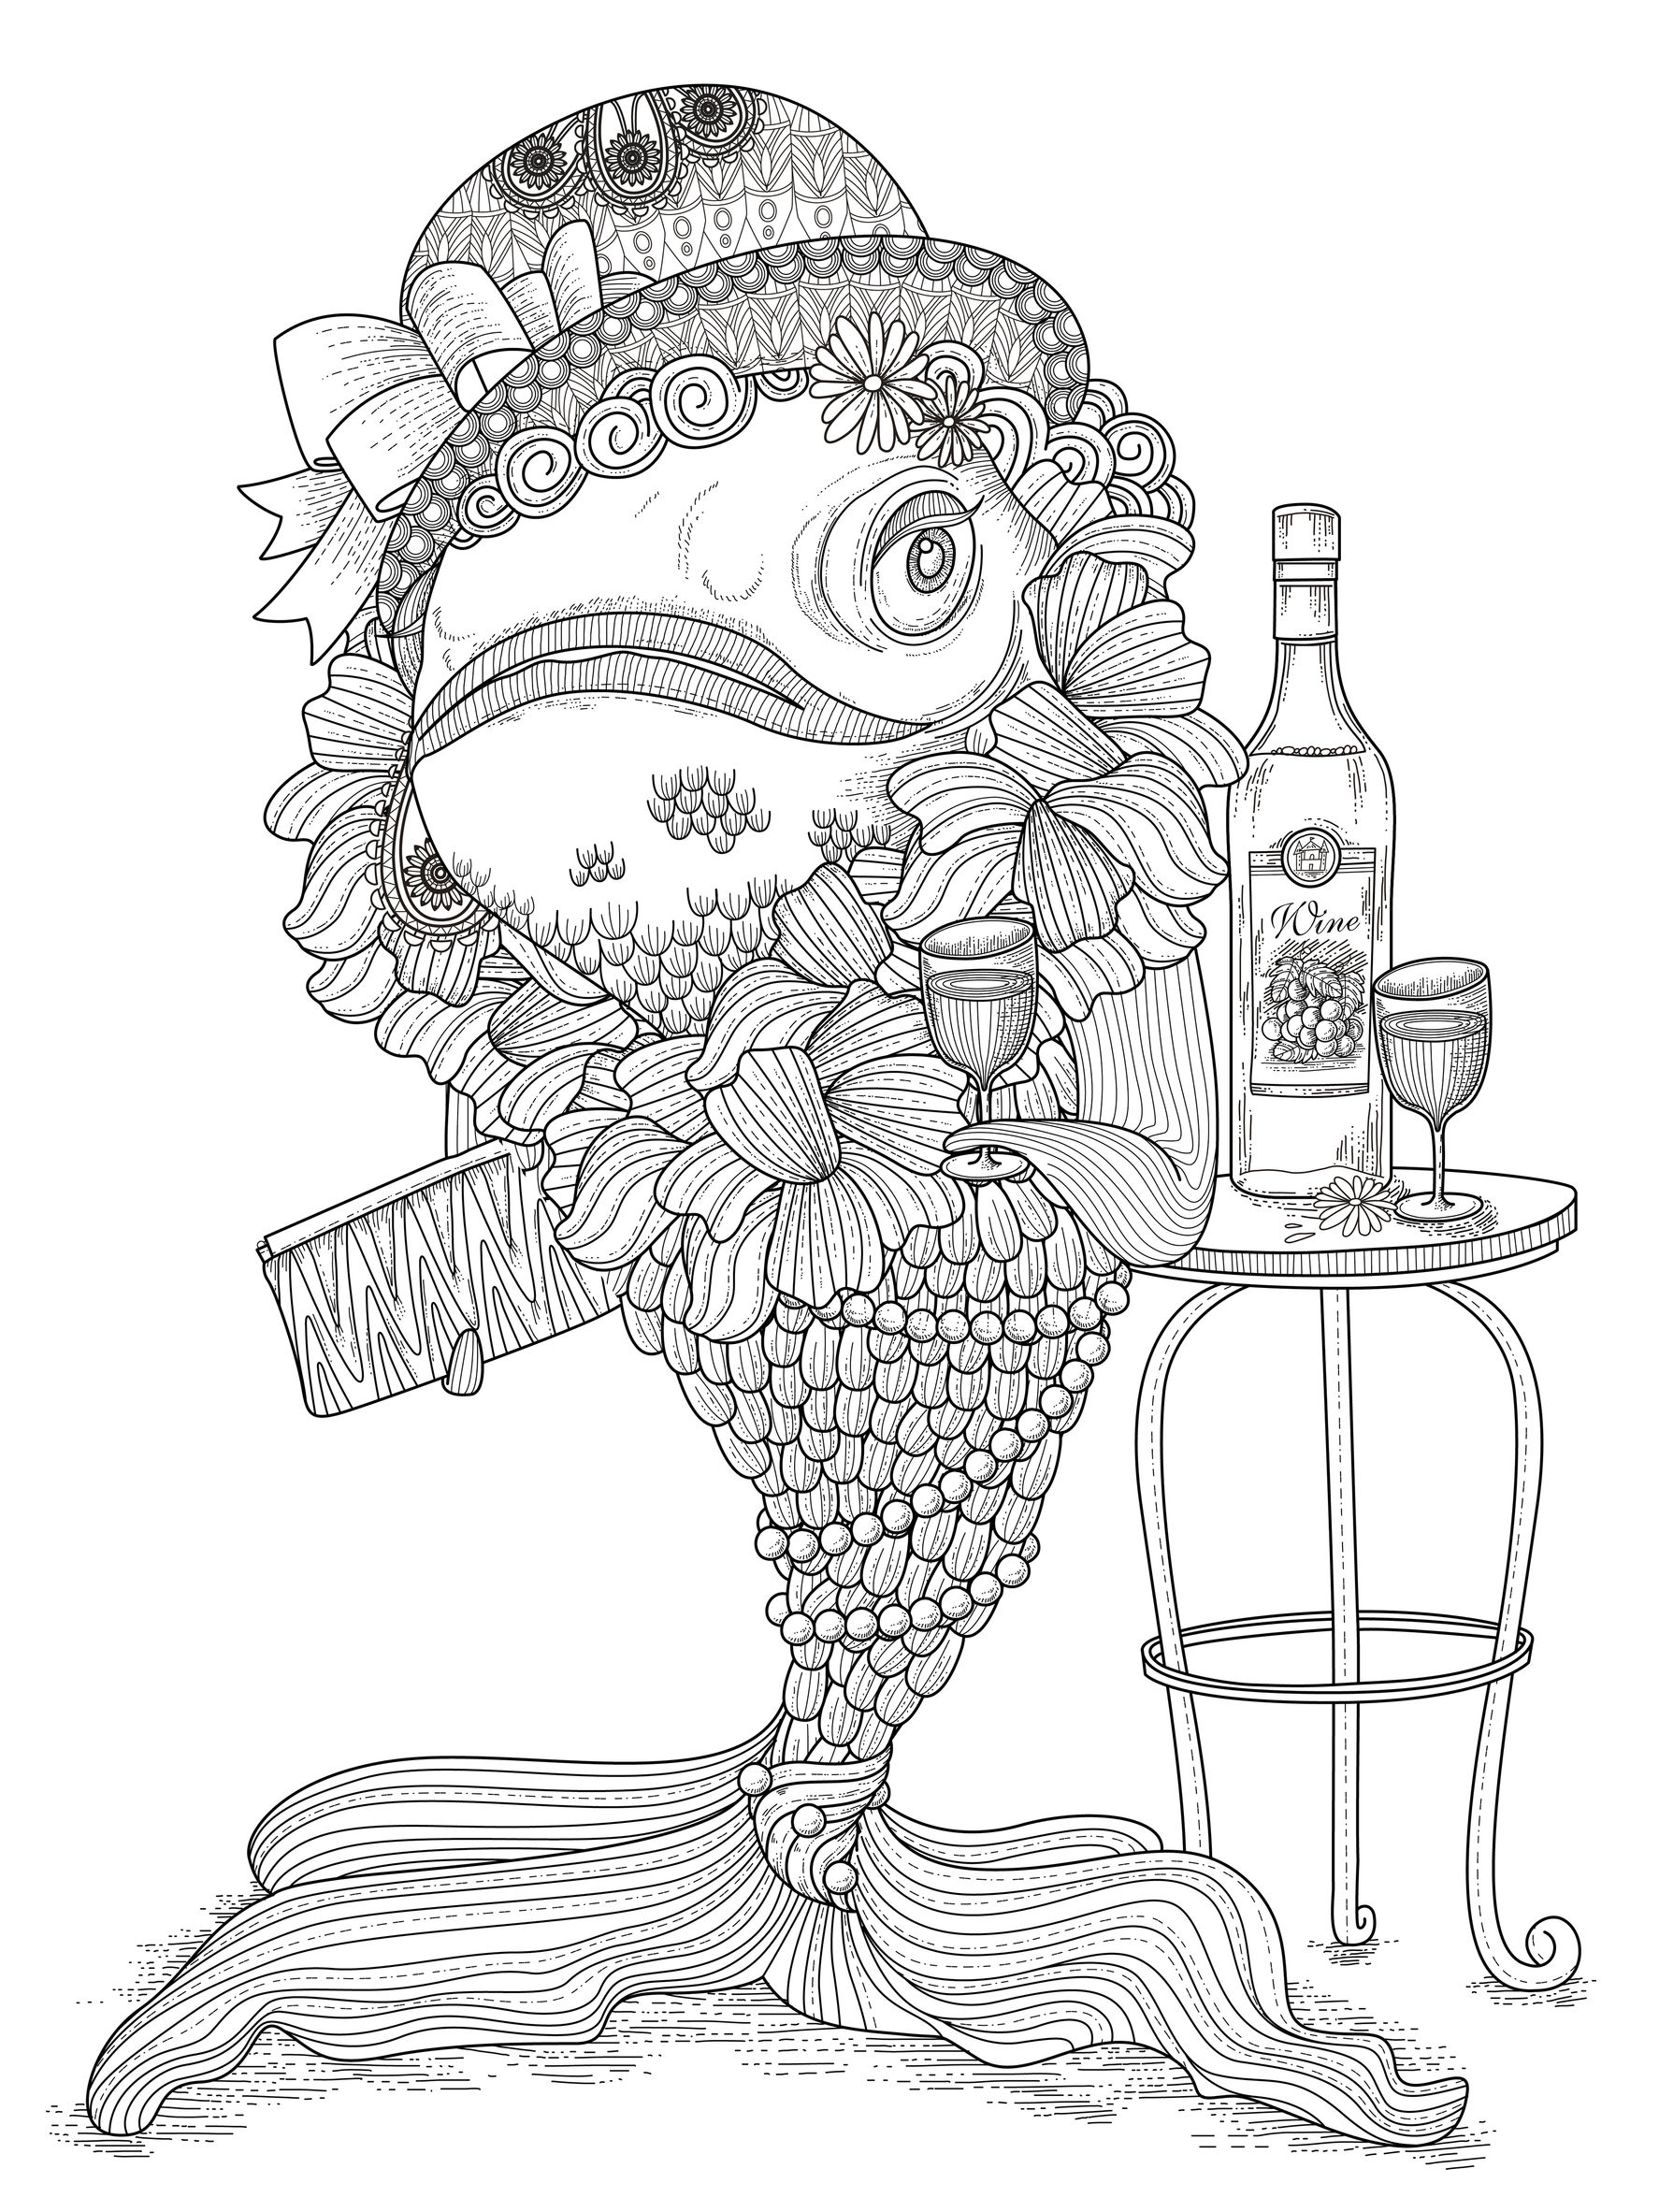 An coloring page of a fish very funny